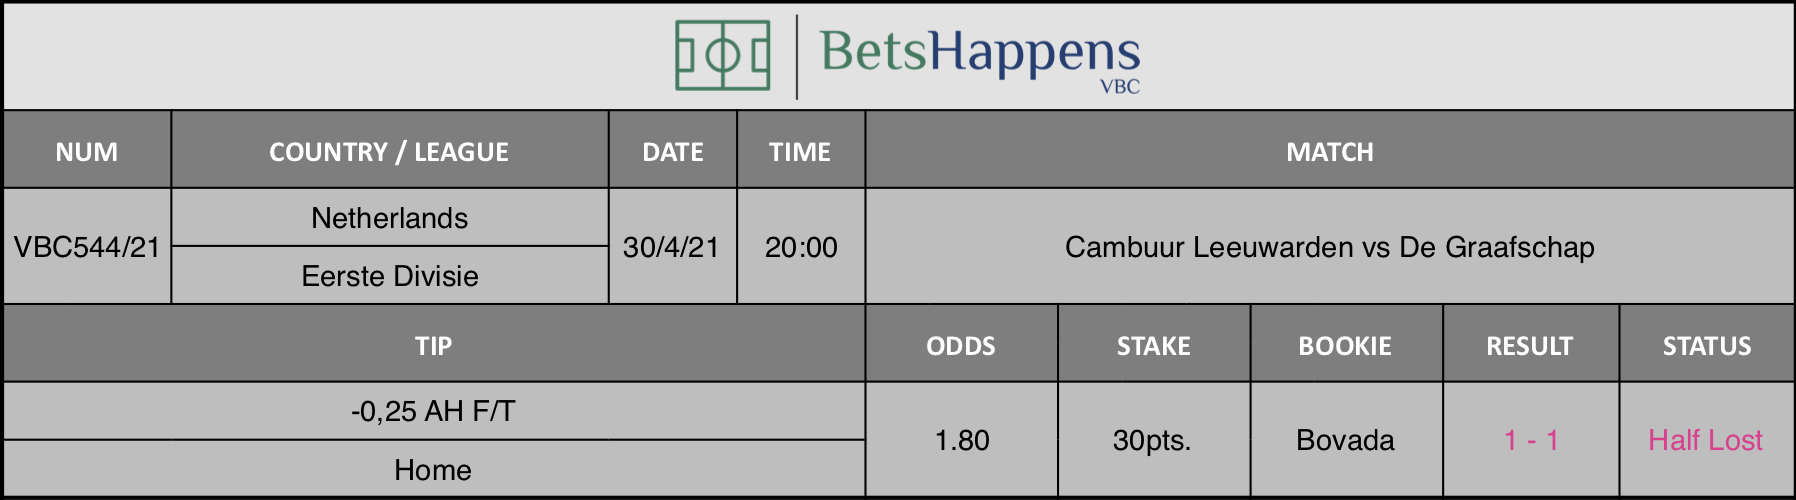 Results of our tip for the Cambuur Leeuwarden vs De Graafschap  match where -0,25 AH F/T Home is recommended.